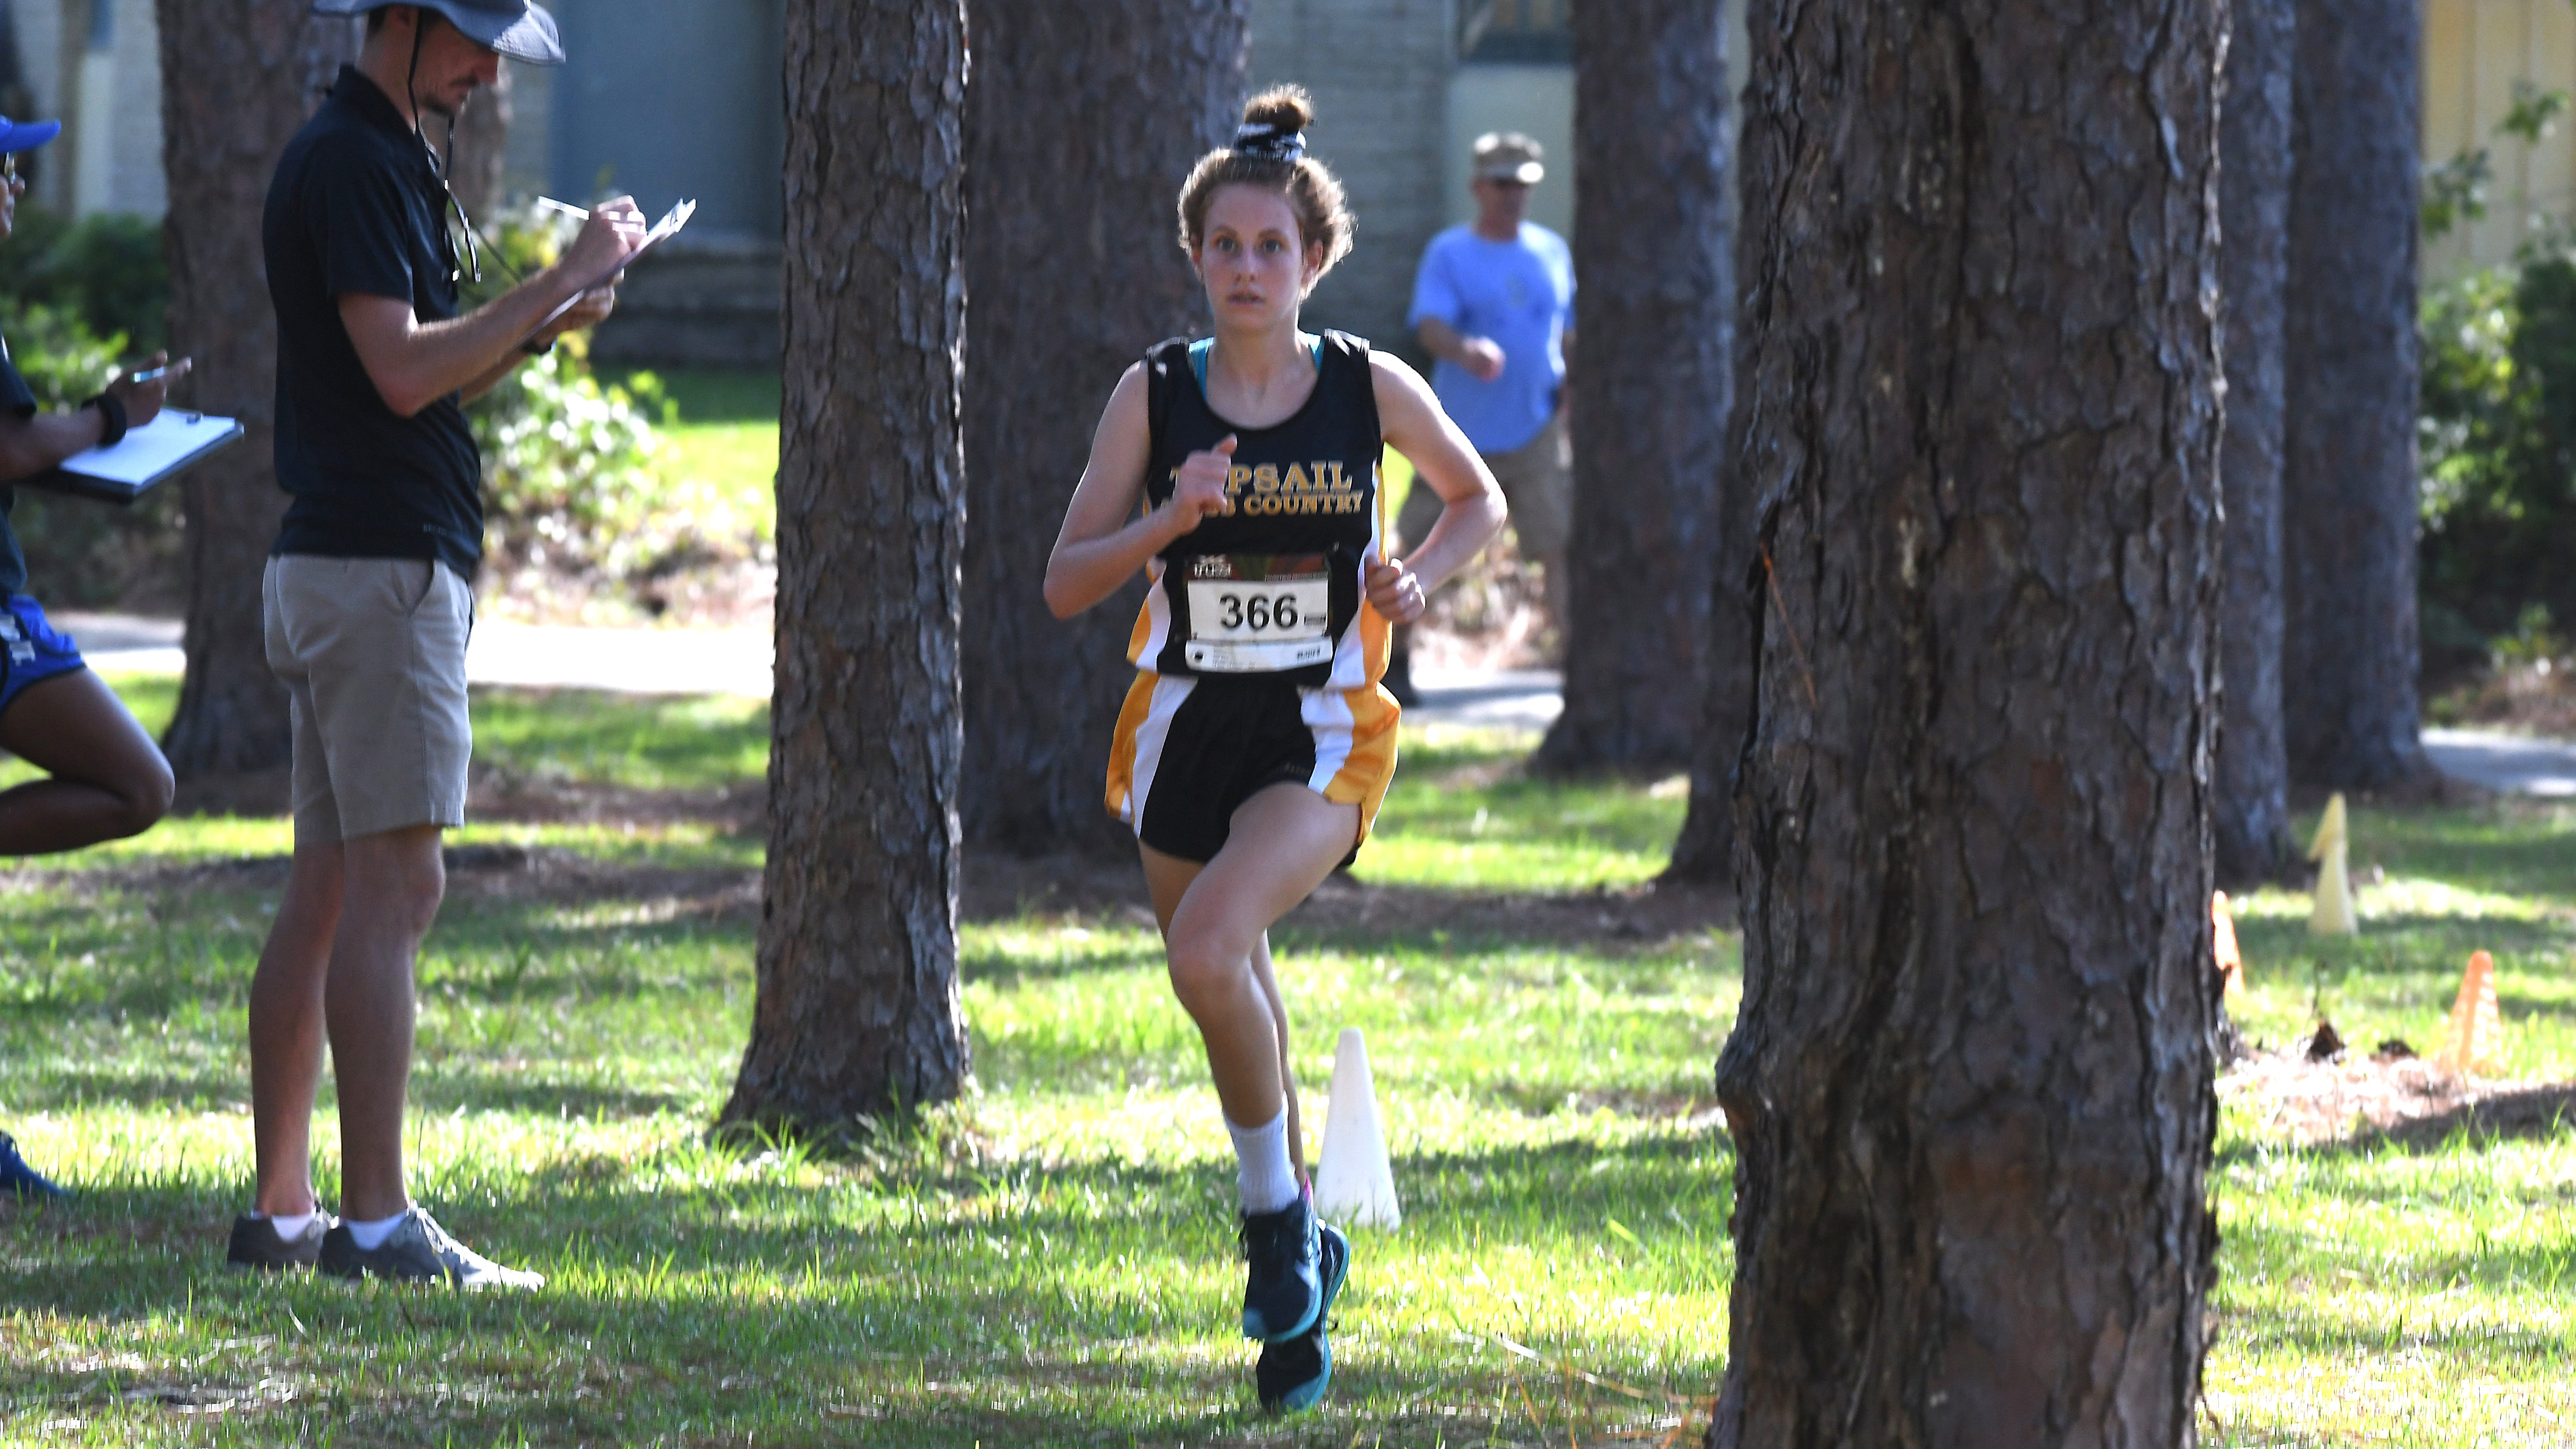 Topsail's Kaitlyn Obremski came in 1st place for the girls with a 18:29.60 during the Hugh MacRae Park Cross Country Kickoff hosted by Hoggard High School Thursday August 22, 2019 at Hugh MacRae Park in Wilmington, N.C.